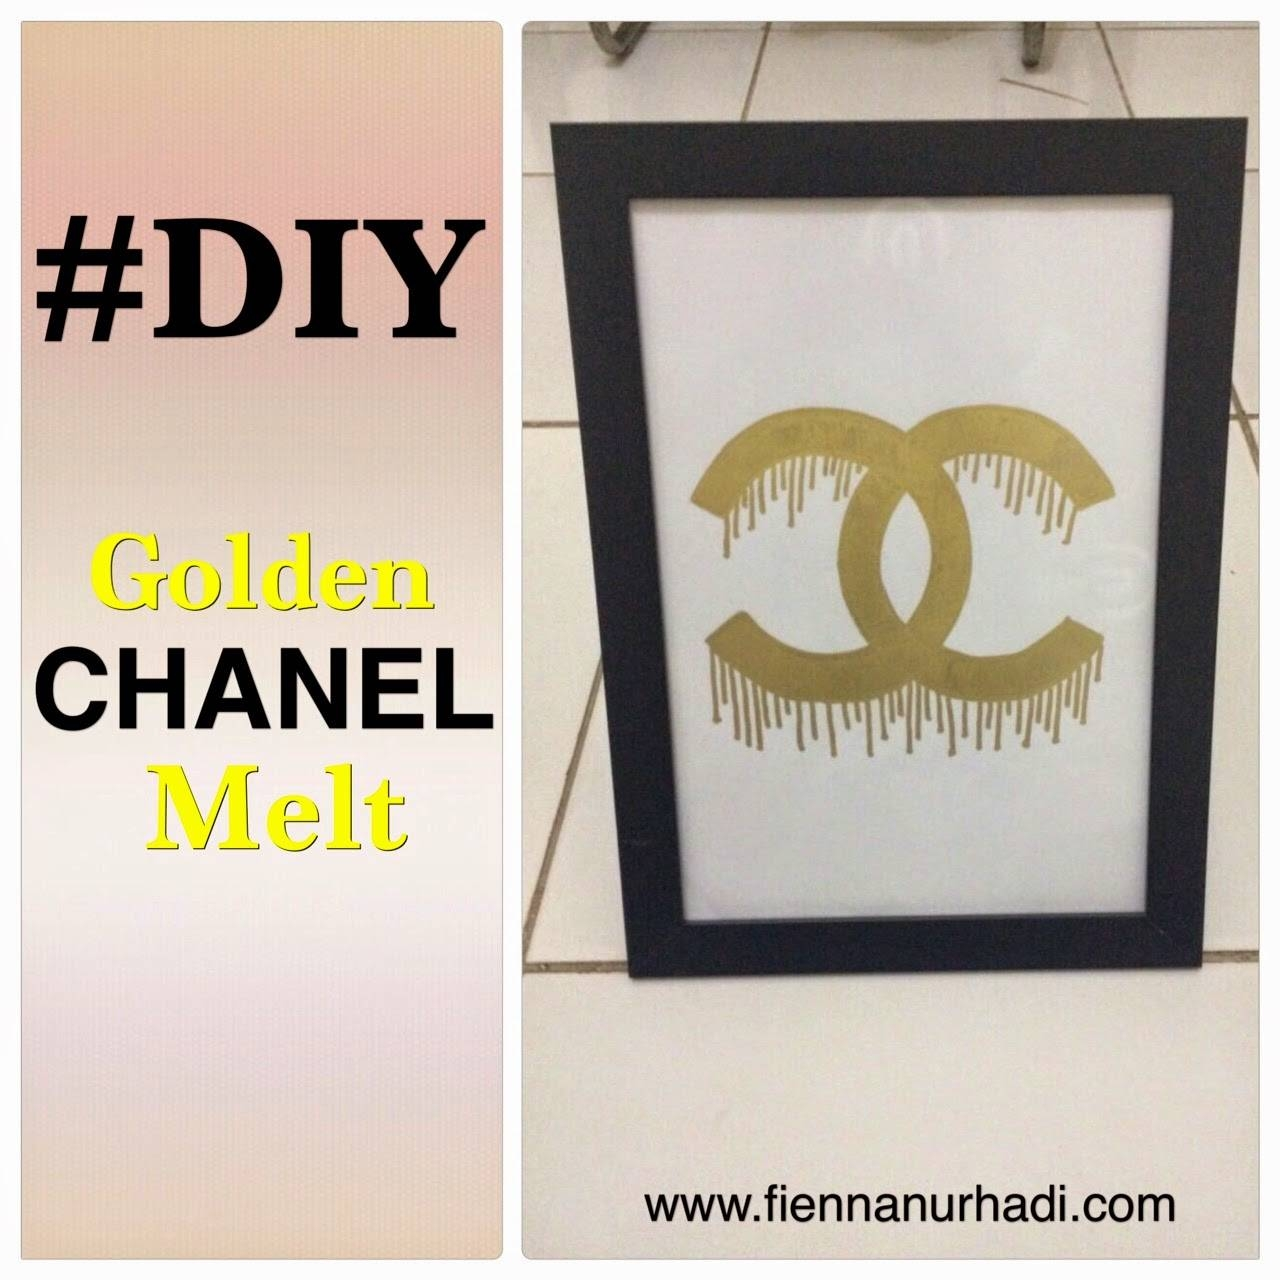 Diy Gold Chanel Melting Wall Decor | Fienna Nurhadi's Blog Throughout 2017 Chanel Wall Decor (View 11 of 25)